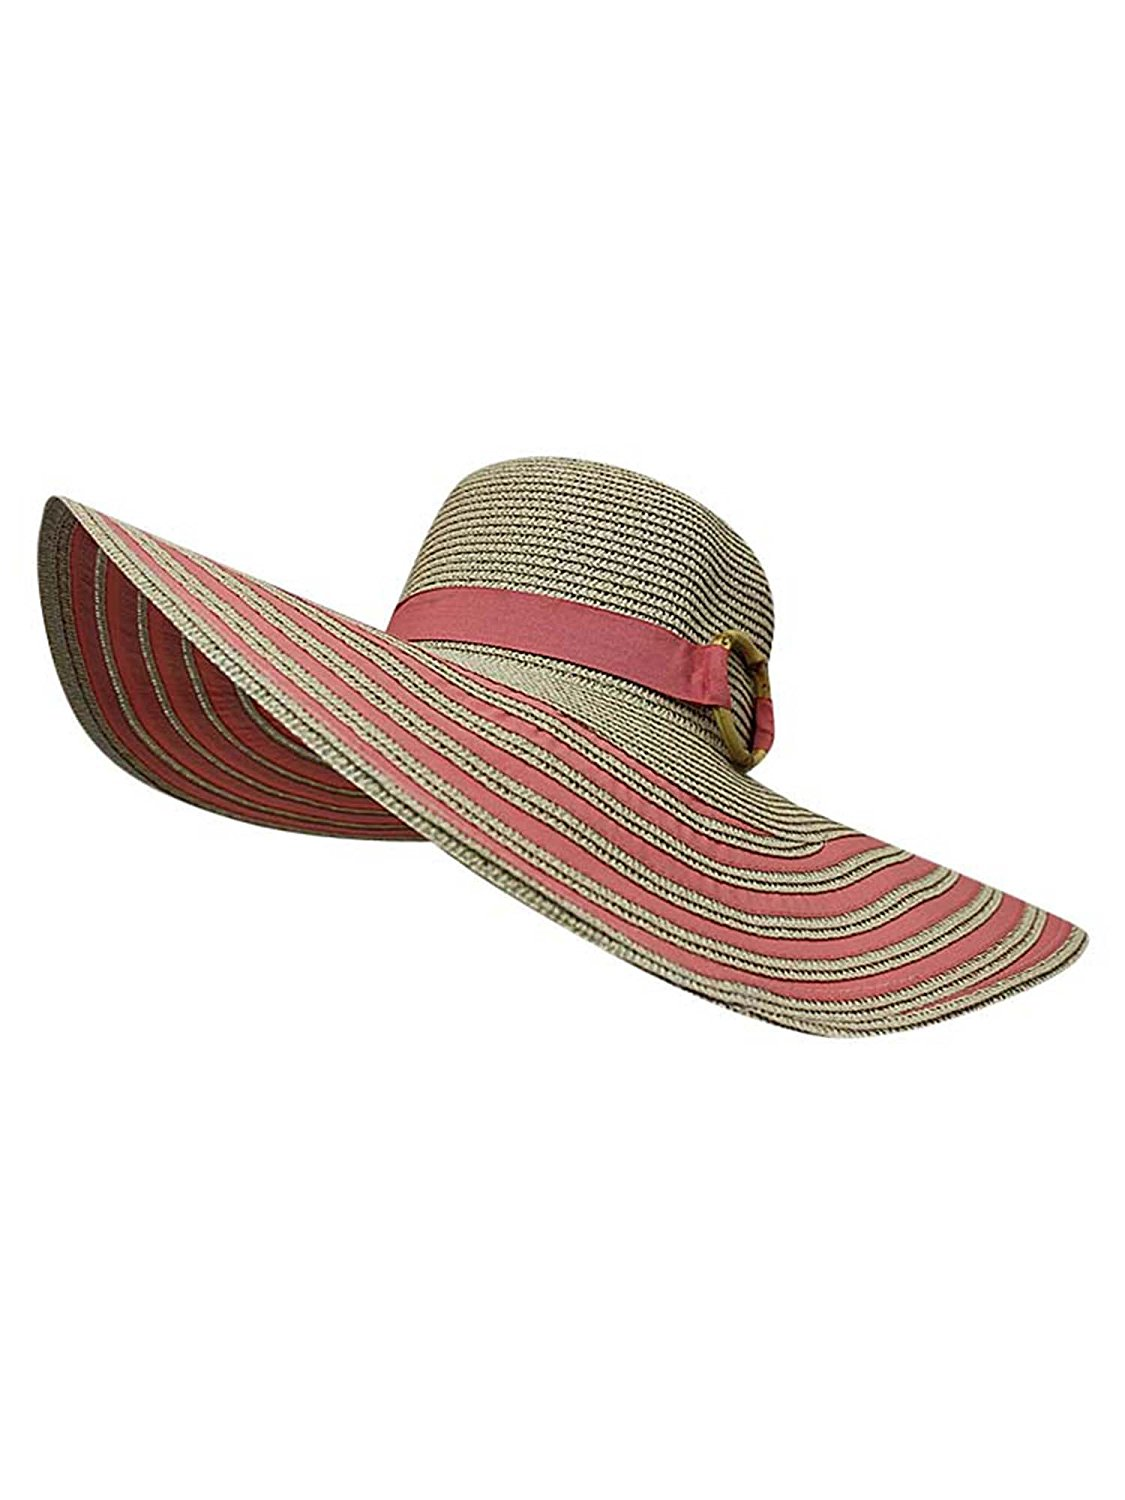 Get Quotations · Luxury Divas Striped Straw Floppy Hat 6fa6a68d9174